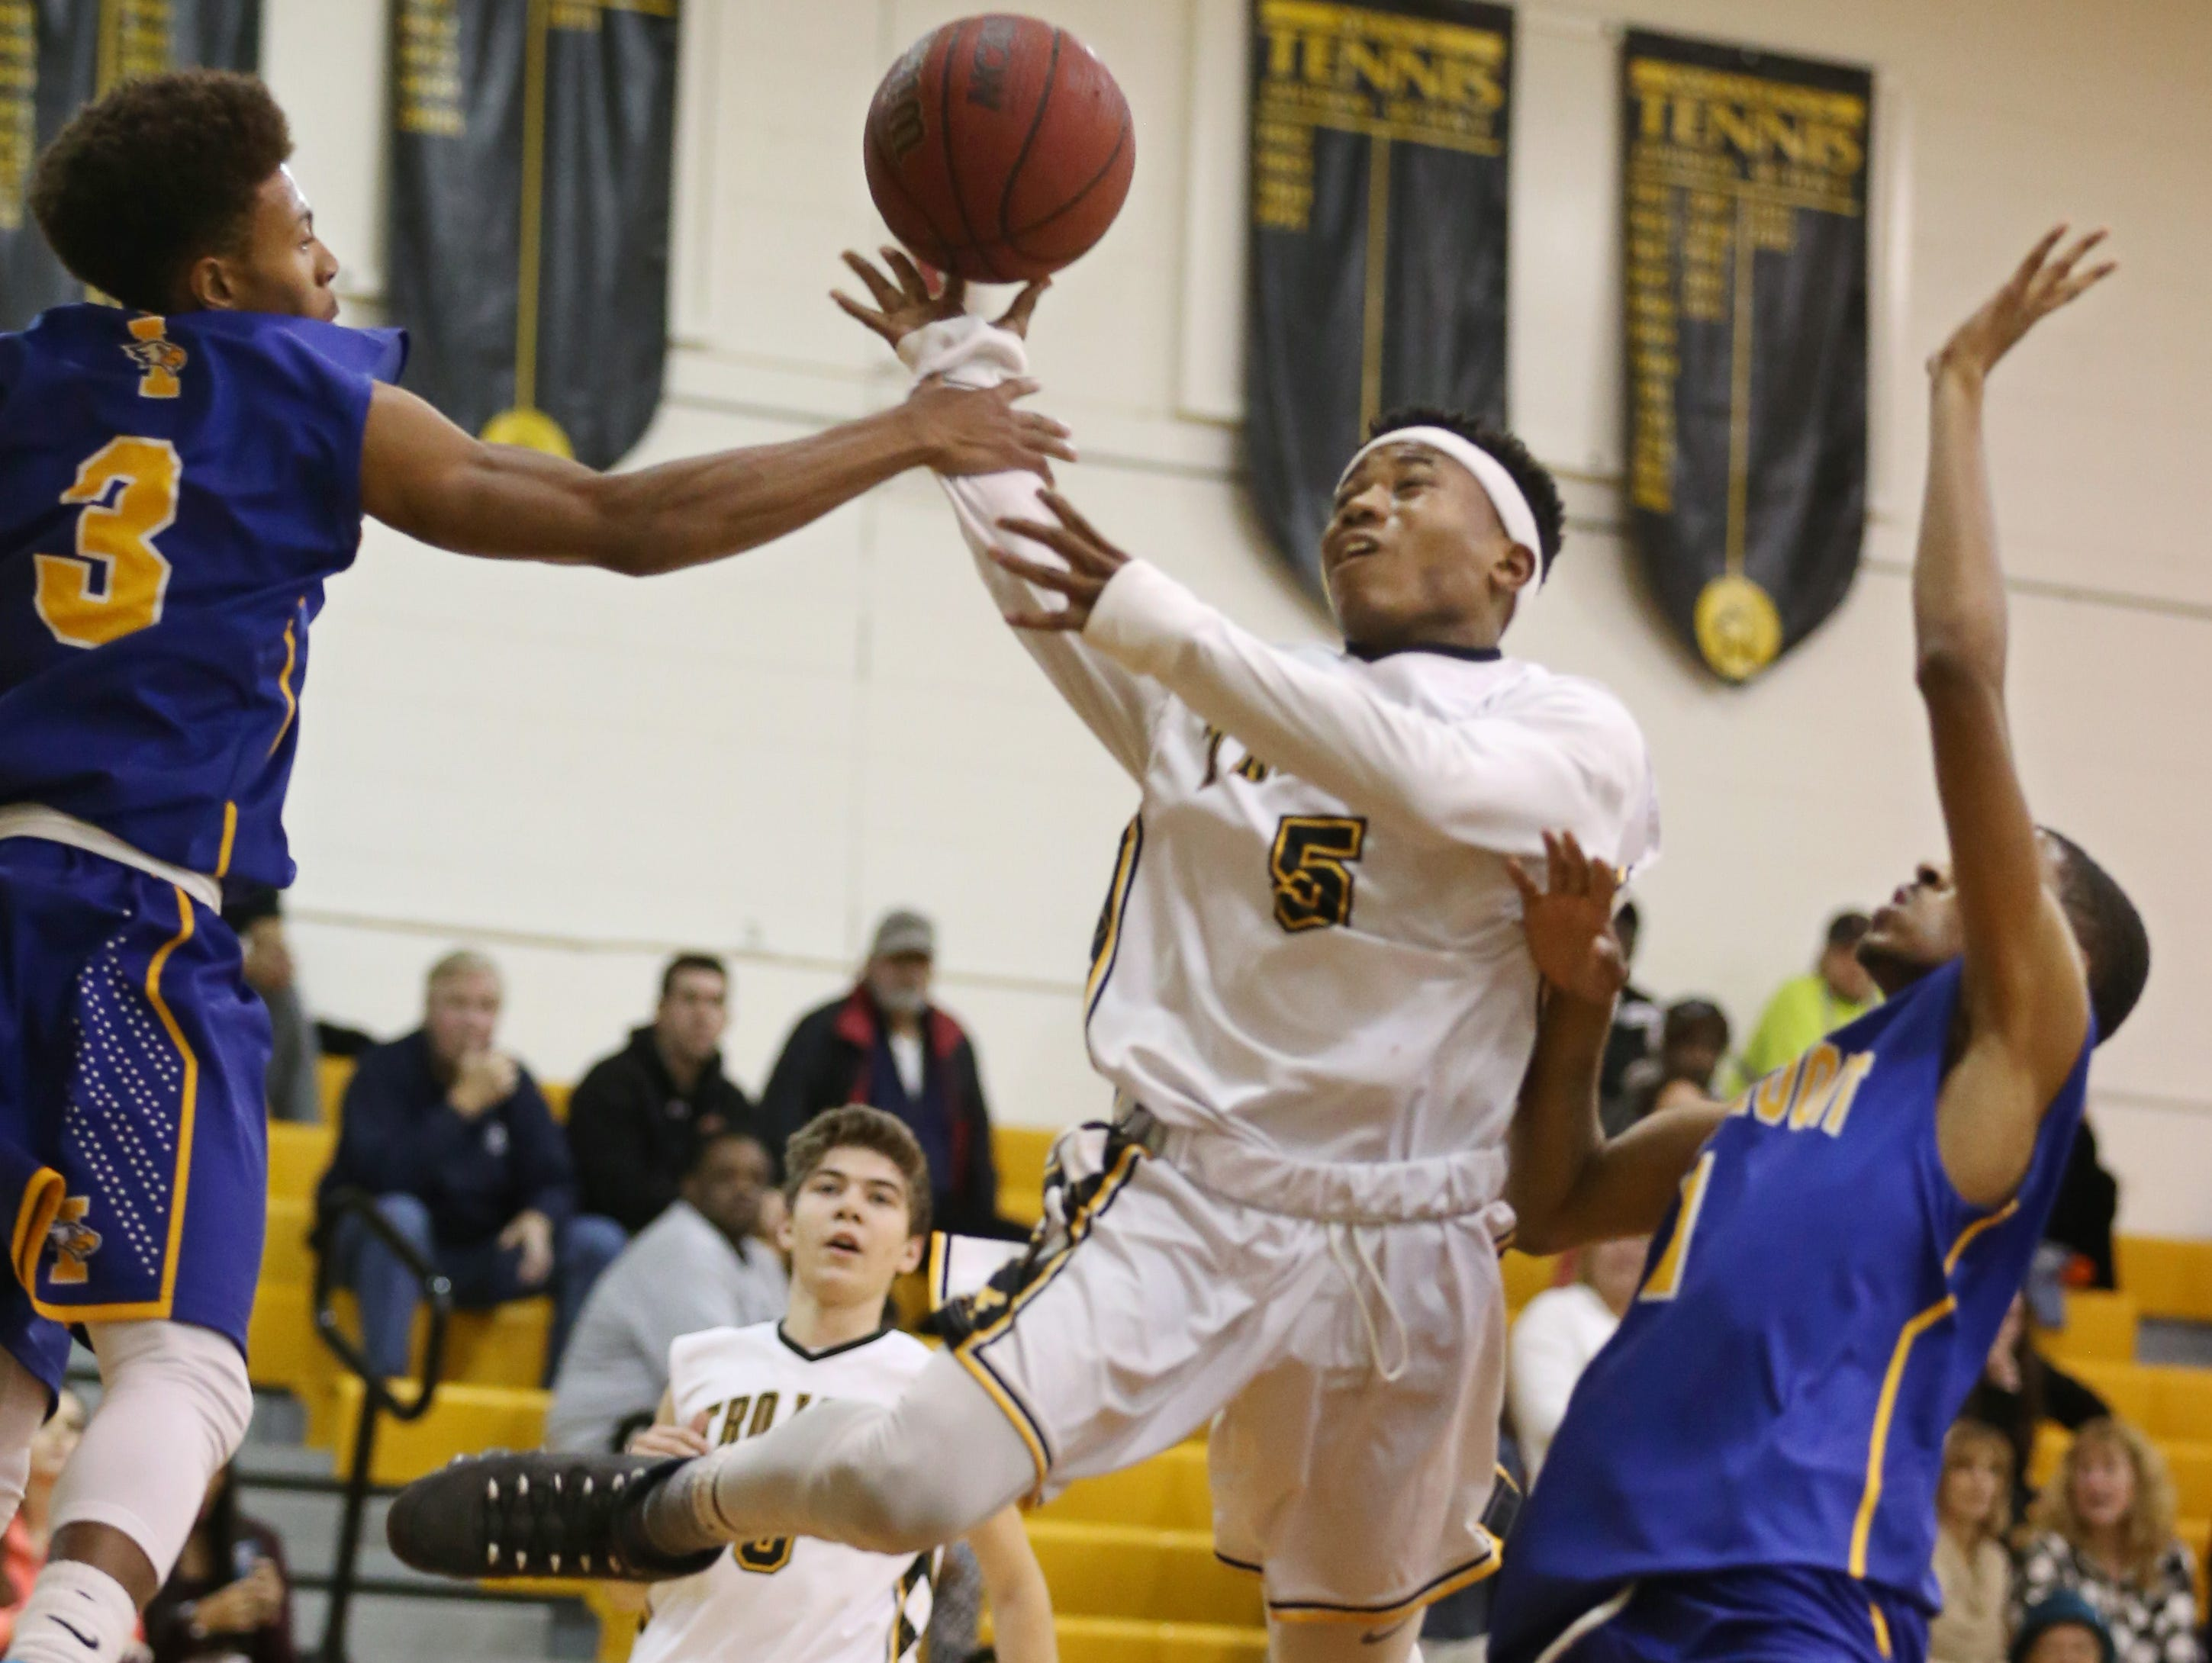 Greece Athena's Kenny Speed, center, draws a foul from Irondequoit's Ty'Reek Sizer, left, as he drives the lane in the first half during their game Monday, Dec. 14, 2015 at Greece.